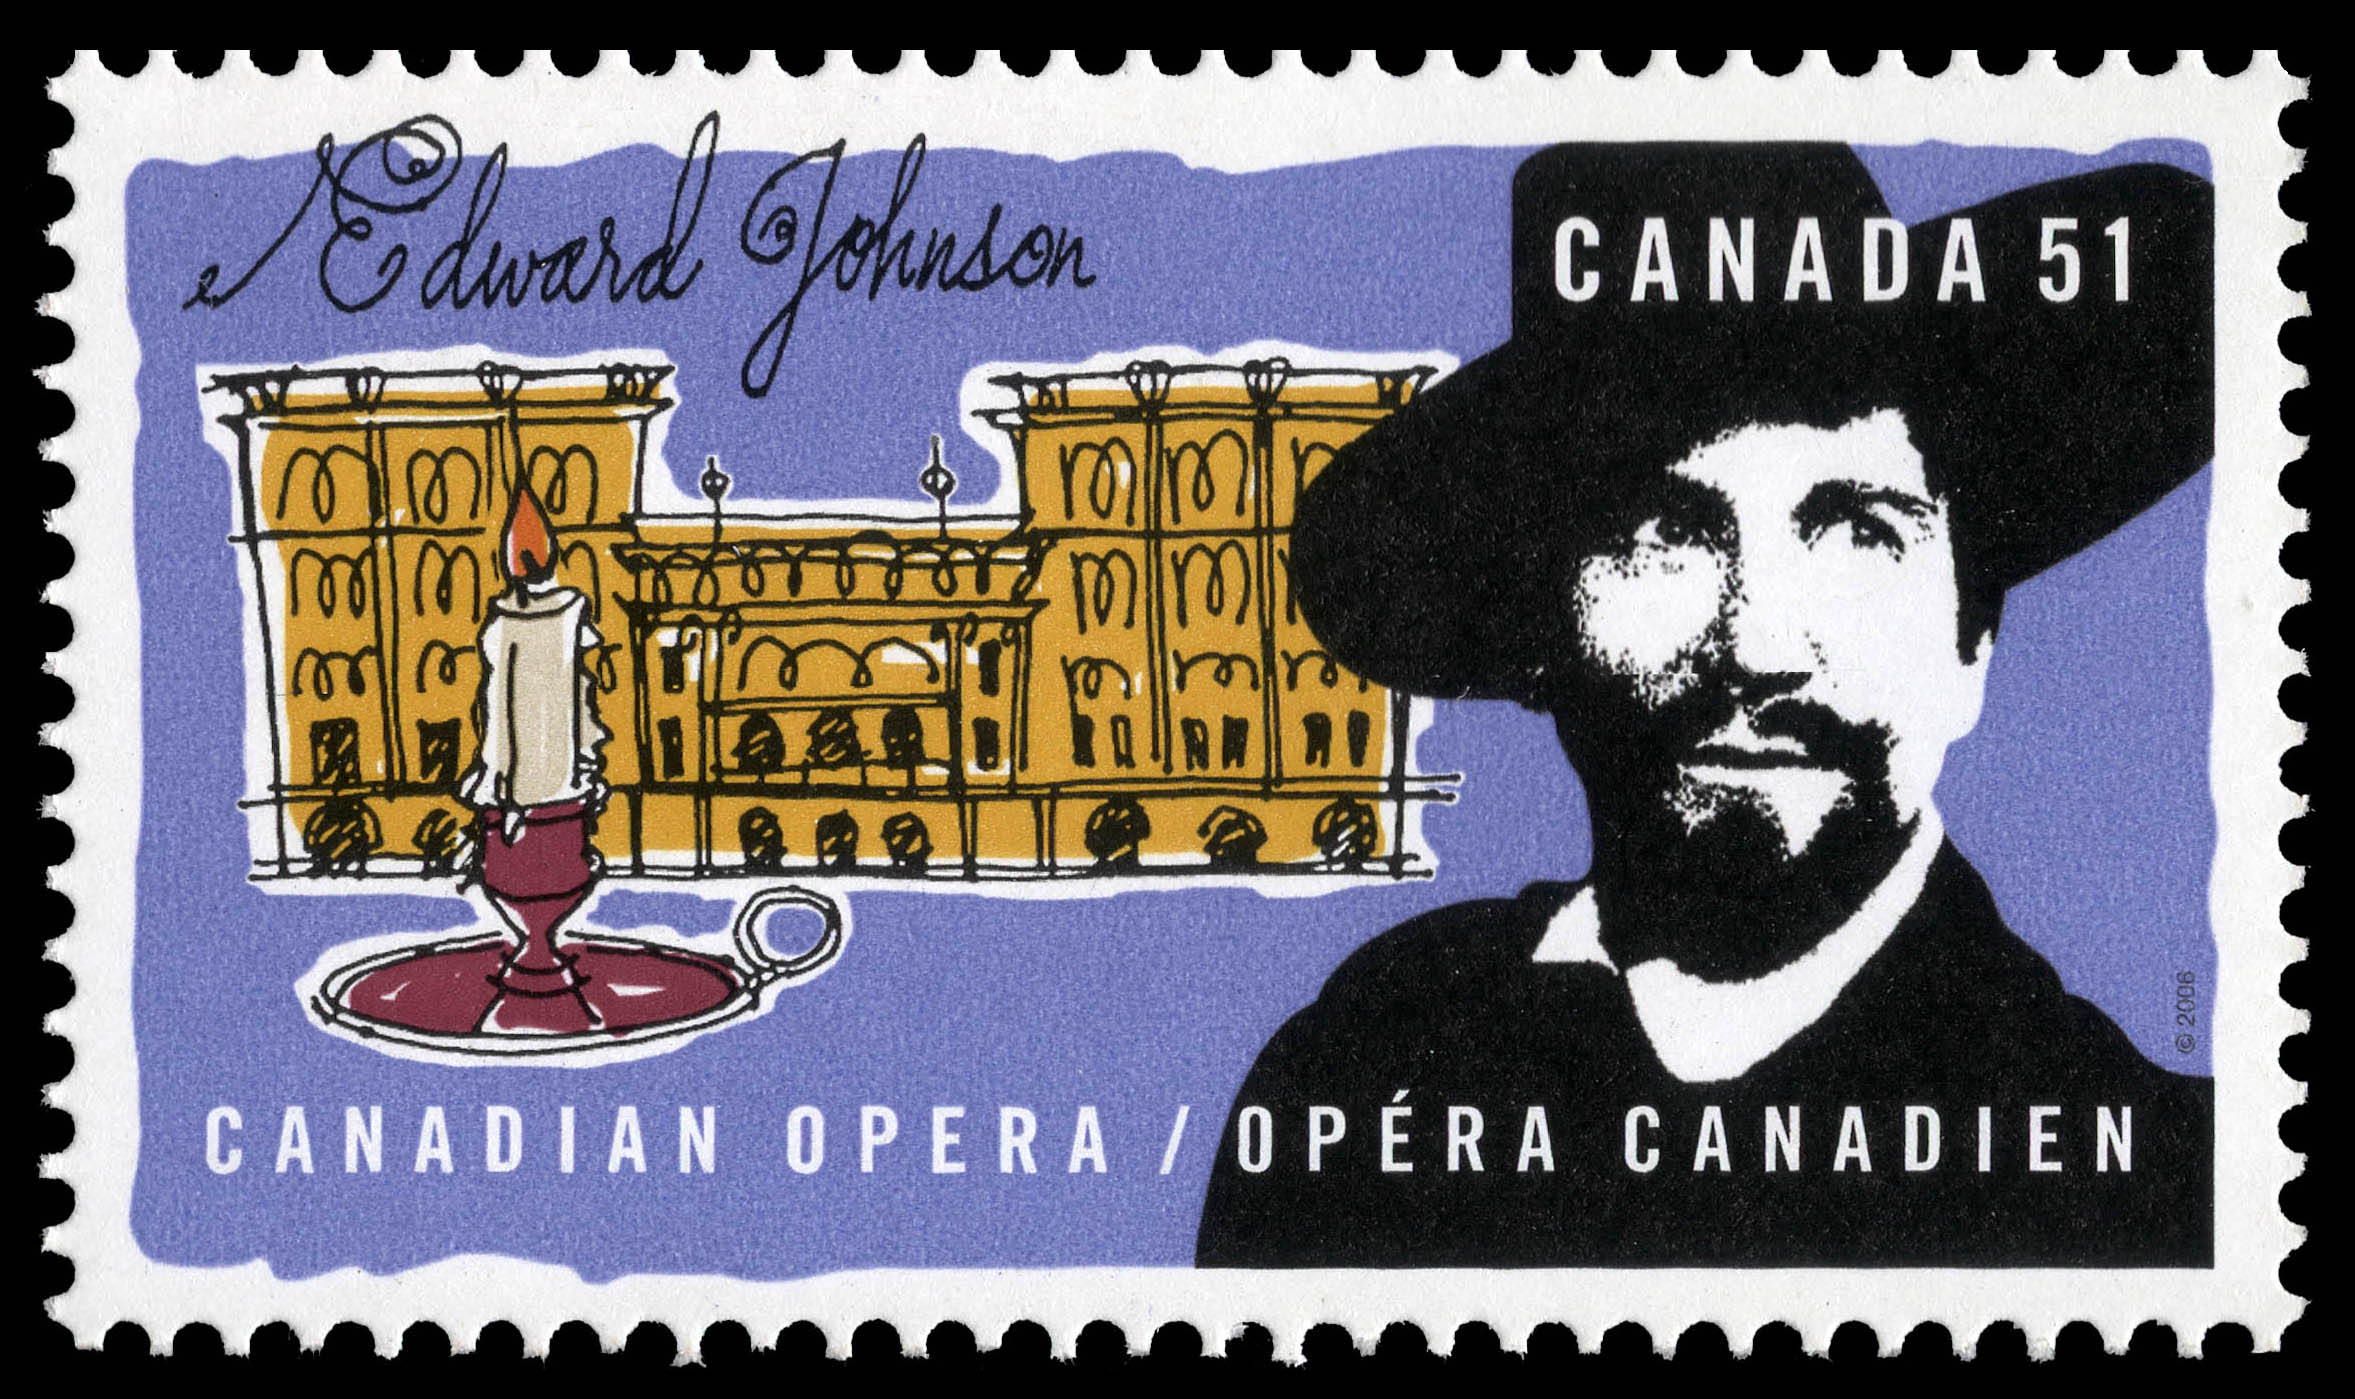 Edward Johnson Canada Postage Stamp | Canadian opera